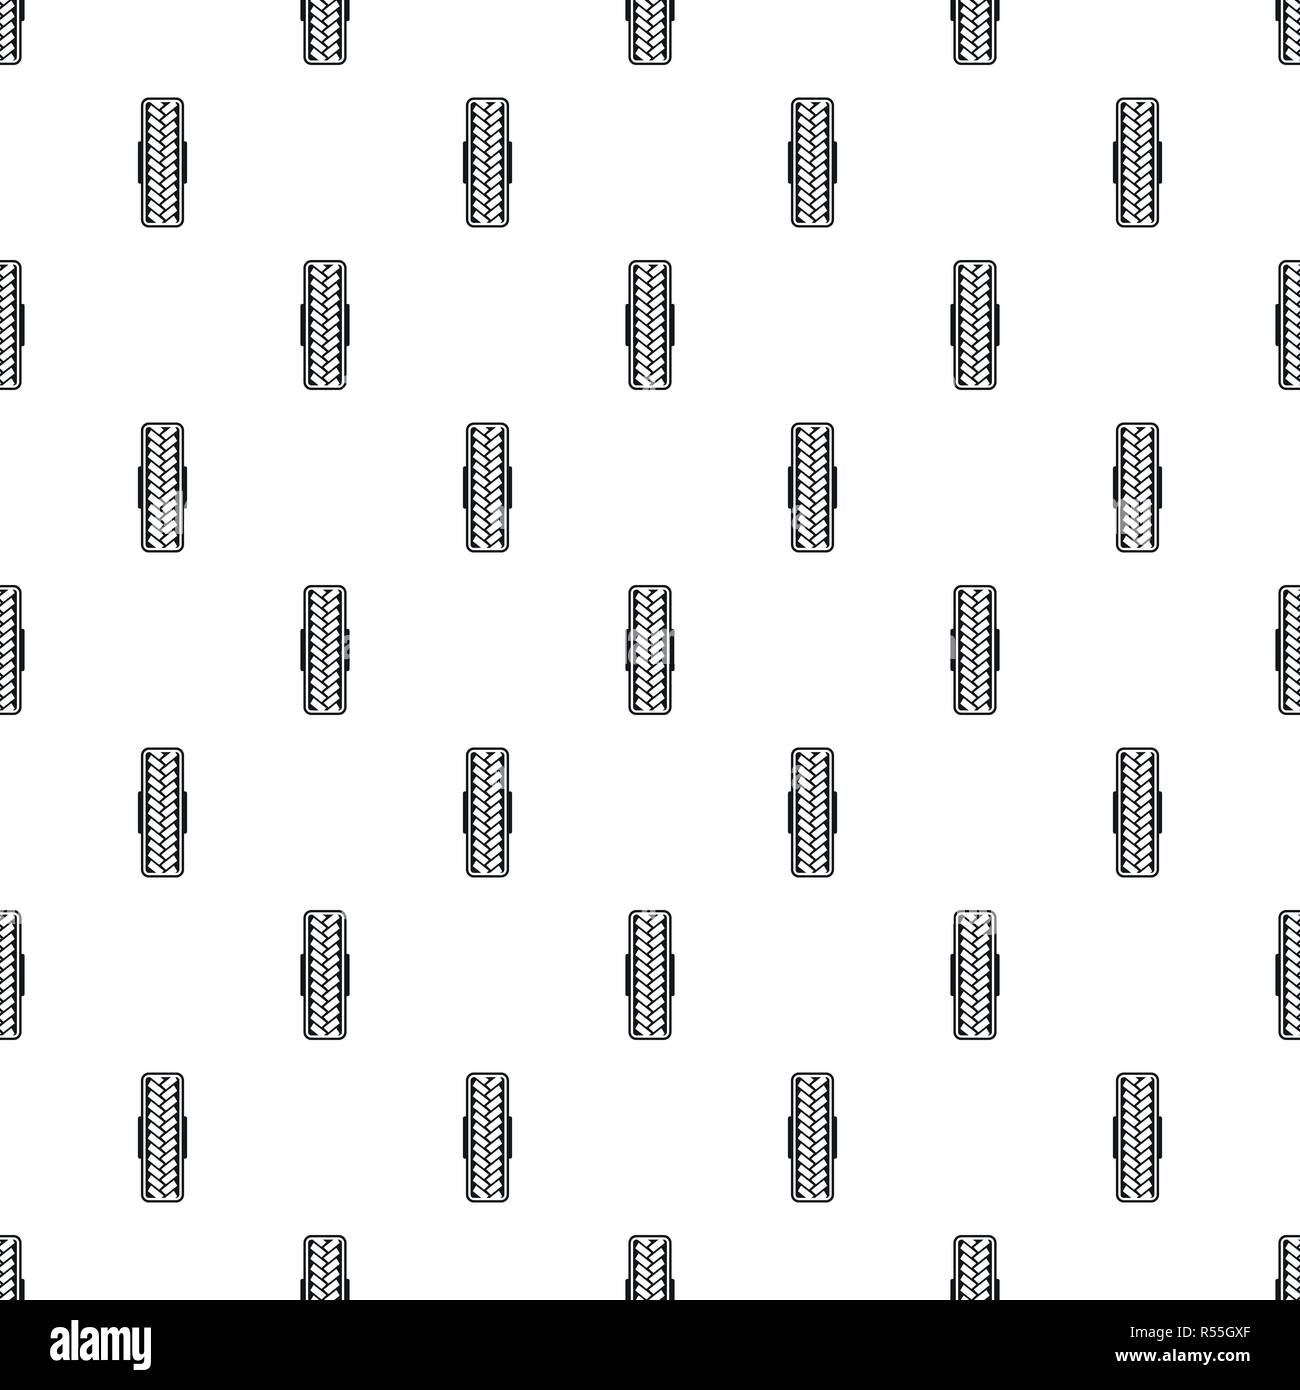 Tread pattern pattern seamless vector repeat geometric for any web design - Stock Vector